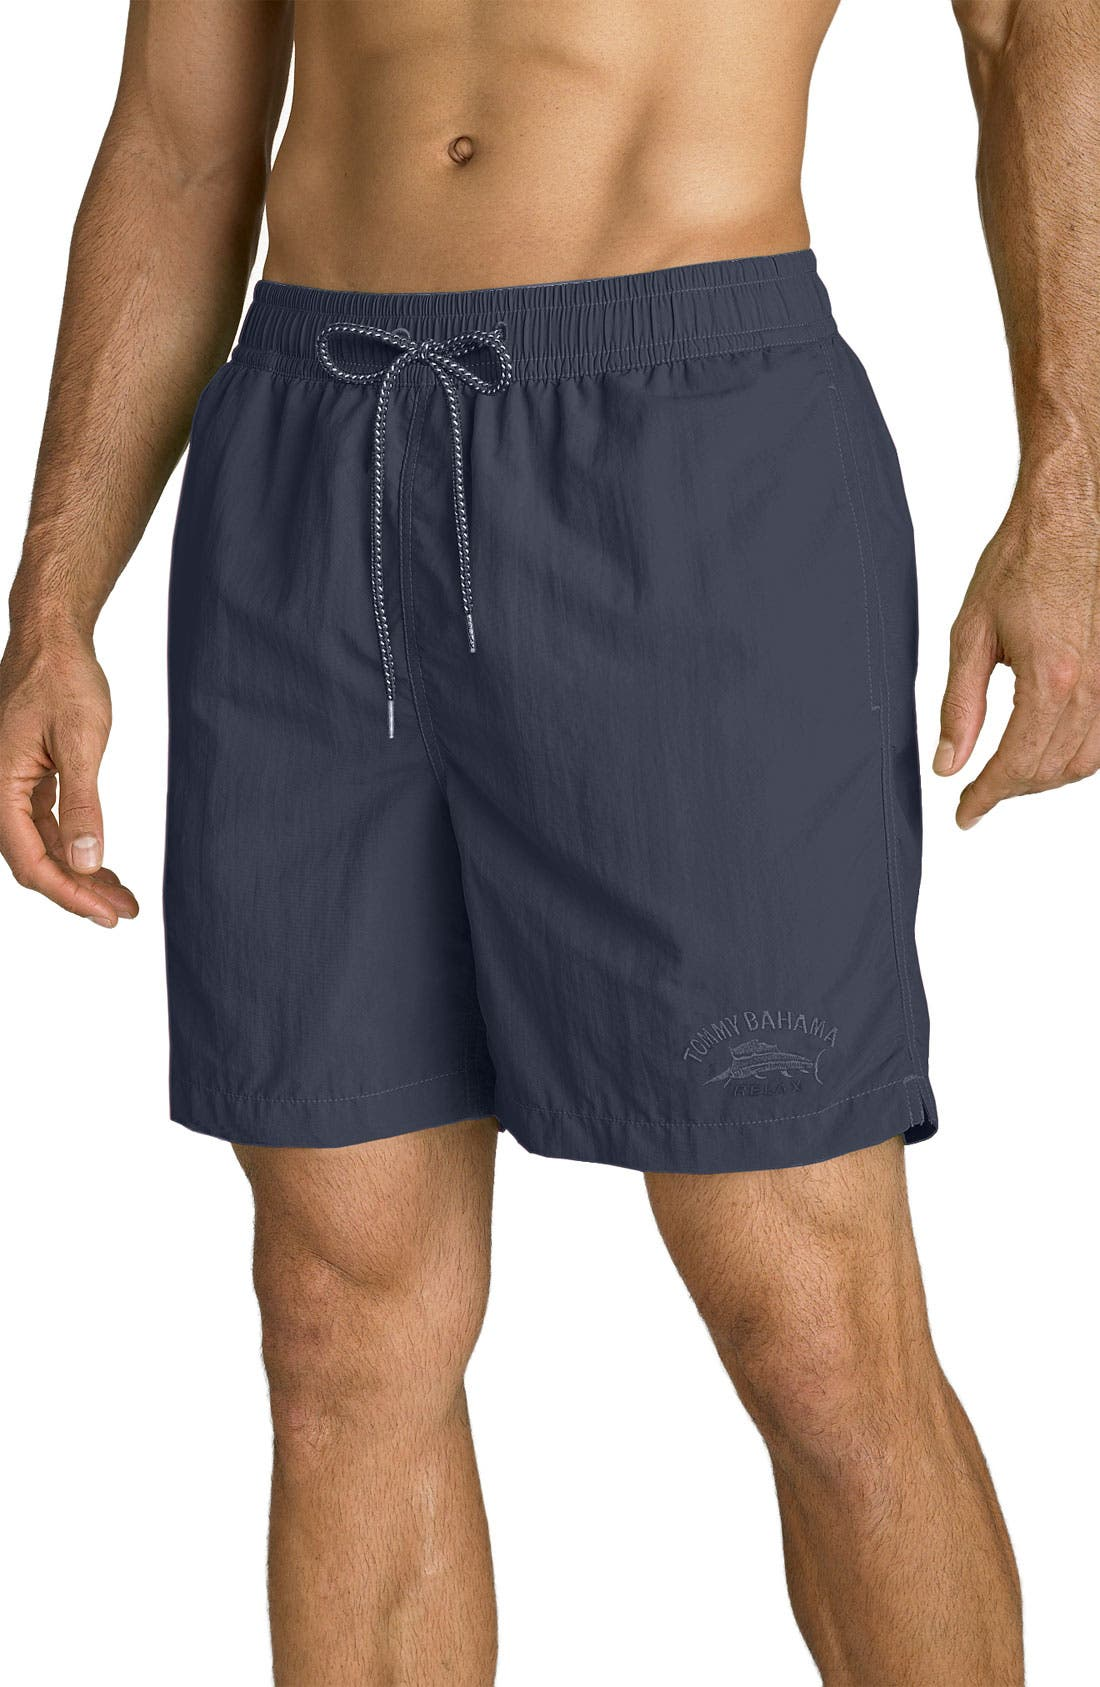 Main Image - Tommy Bahama 'Happy Go Cargo' Volley Swim Trunks (Big & Tall)